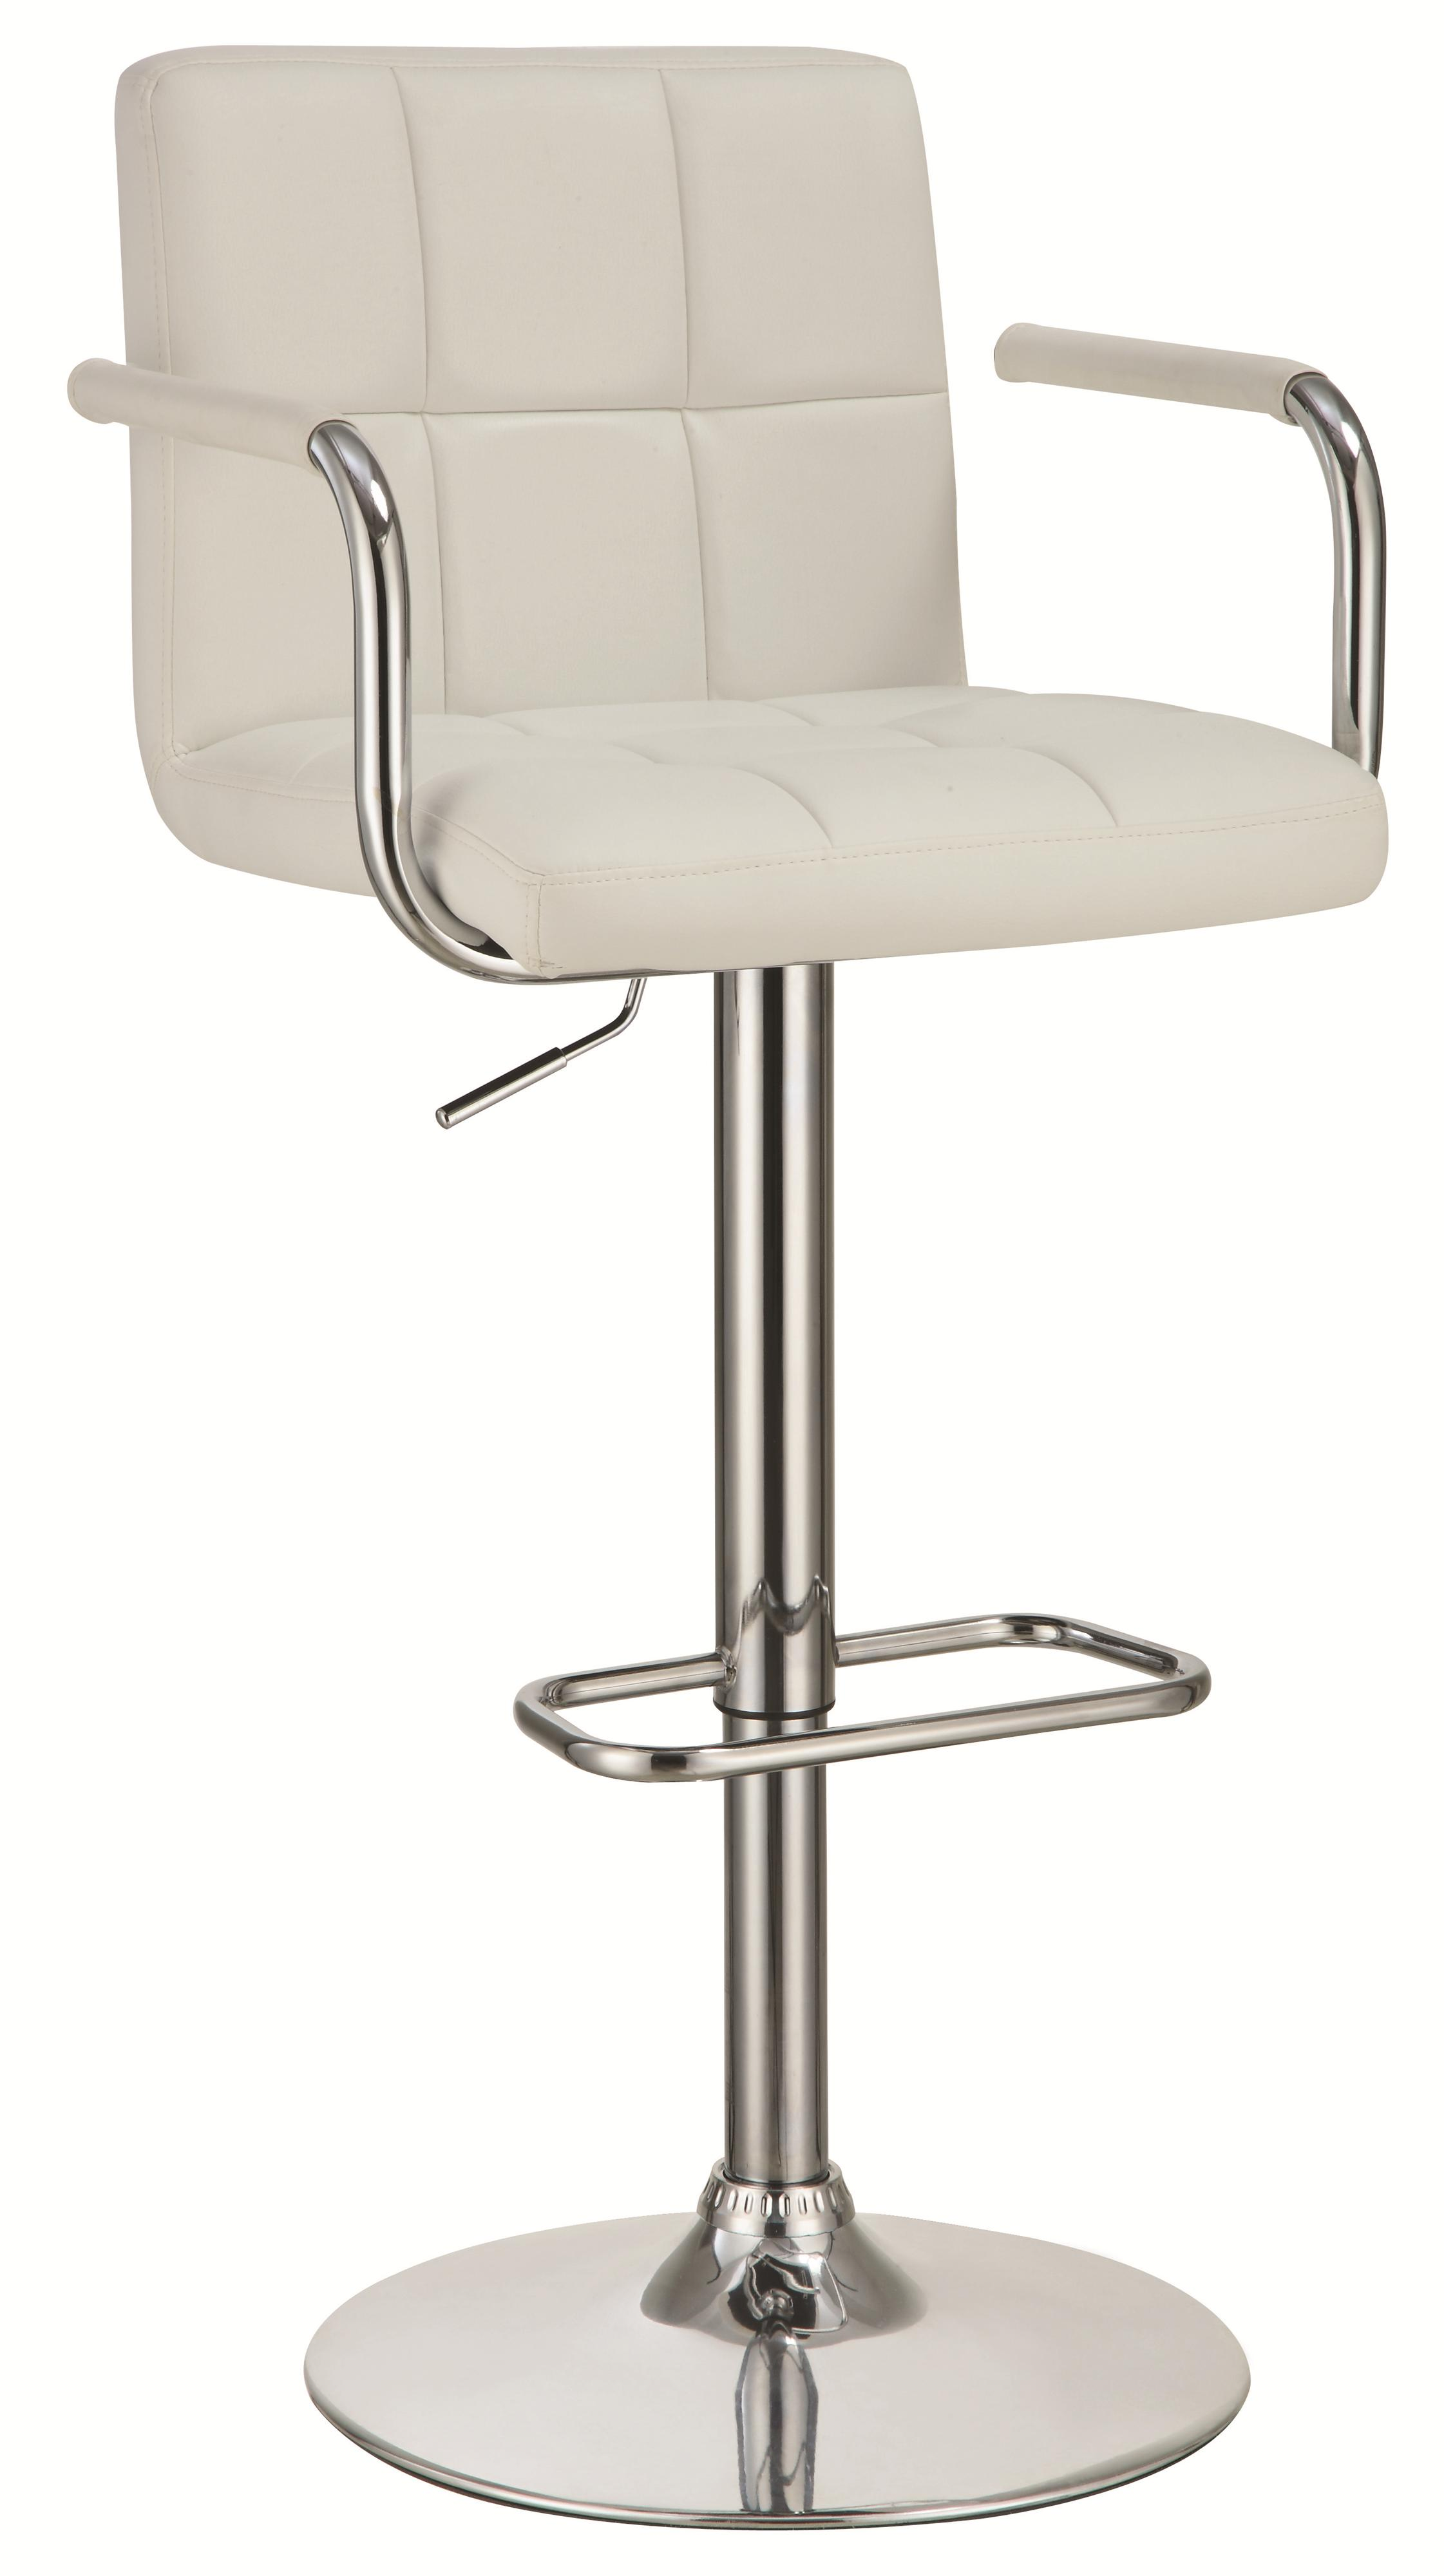 Bar Units and Bar Tables Bar Stool by Coaster at Lapeer Furniture & Mattress Center